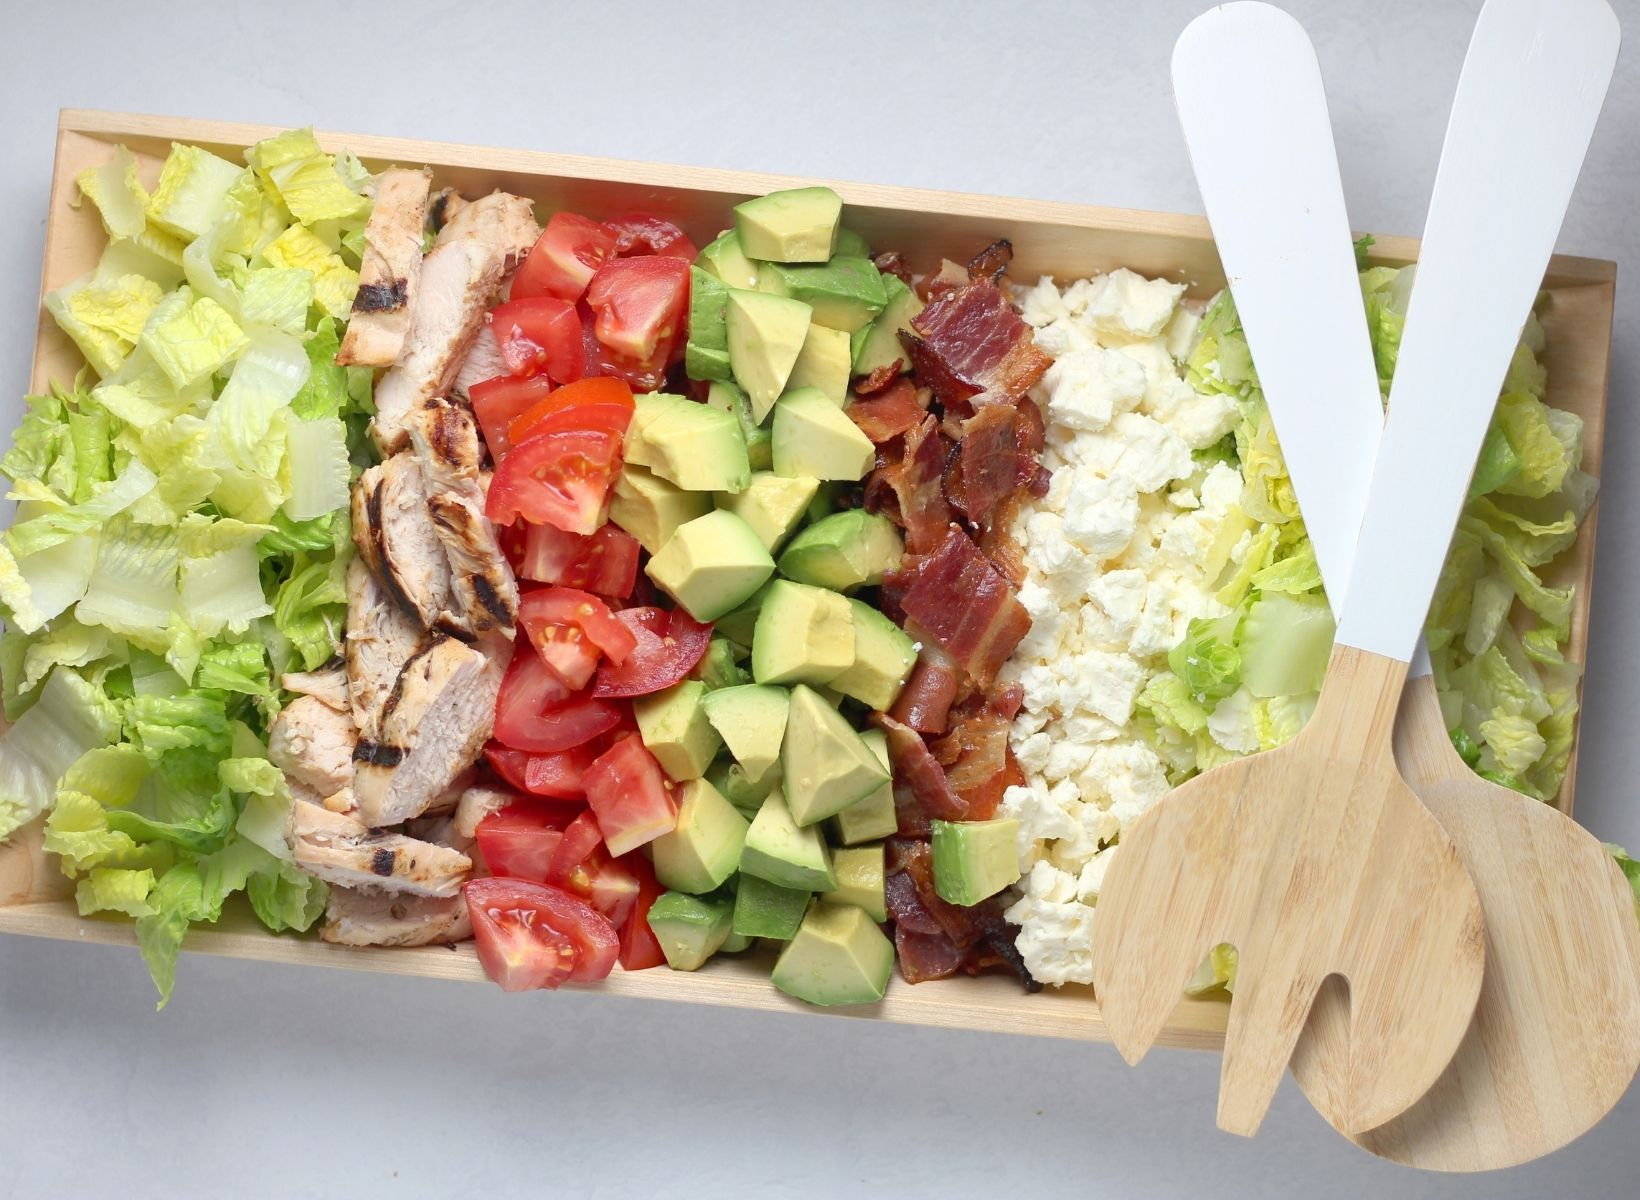 Cobb salad on a wooden serving dish with salad serving spoons on the side